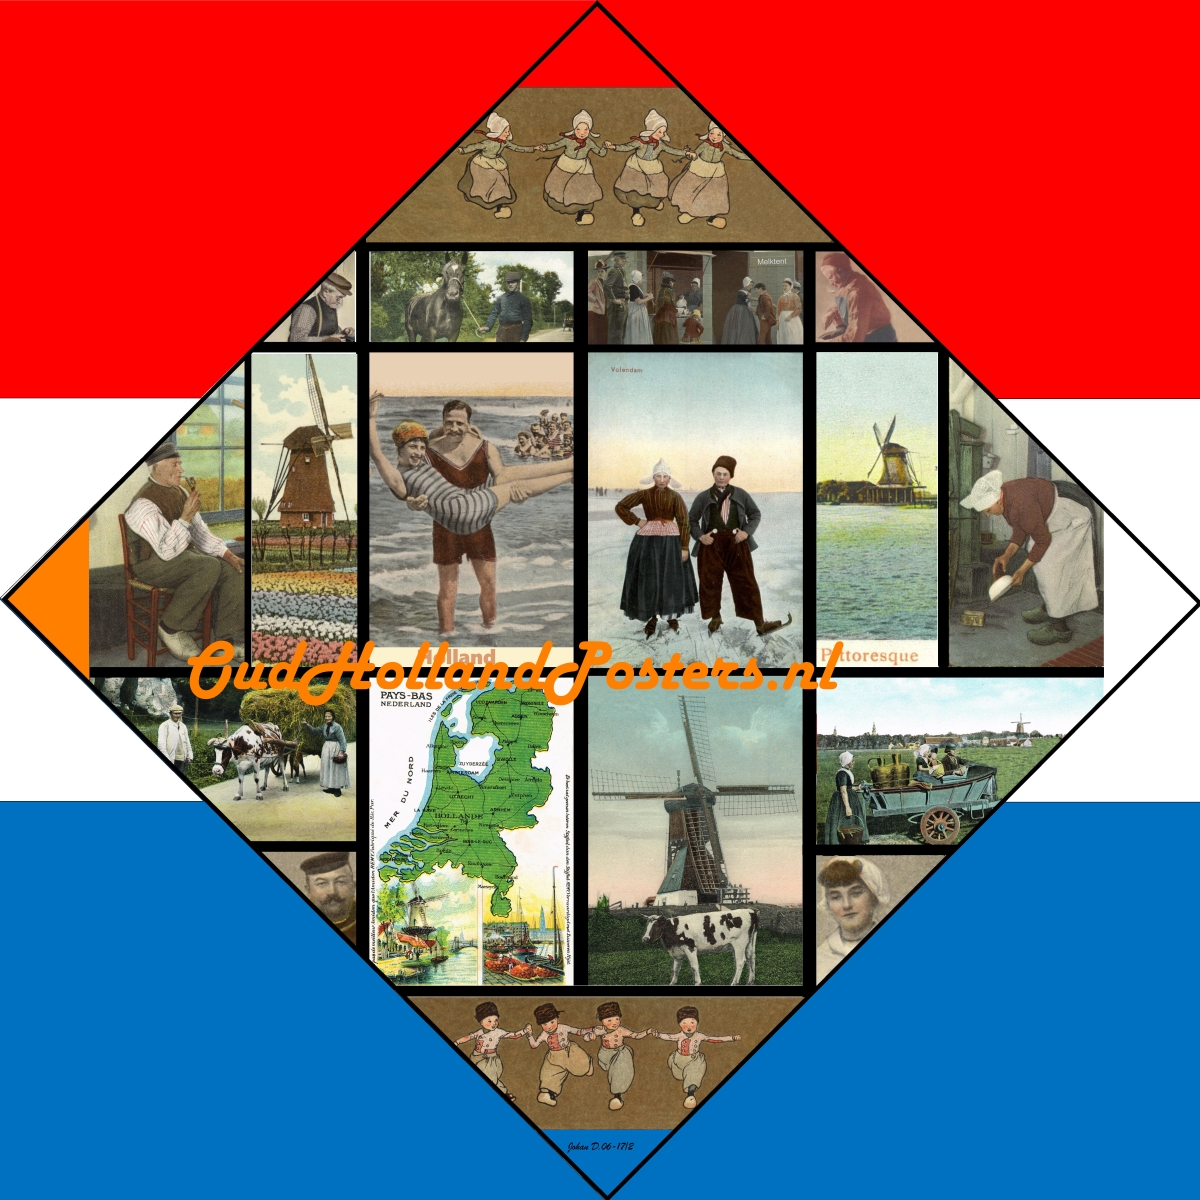 VSAP Old Holland pittoresque vintage poster inspired by Piet Mondriaan Victory boogie woogie in kleur O 9  ohp